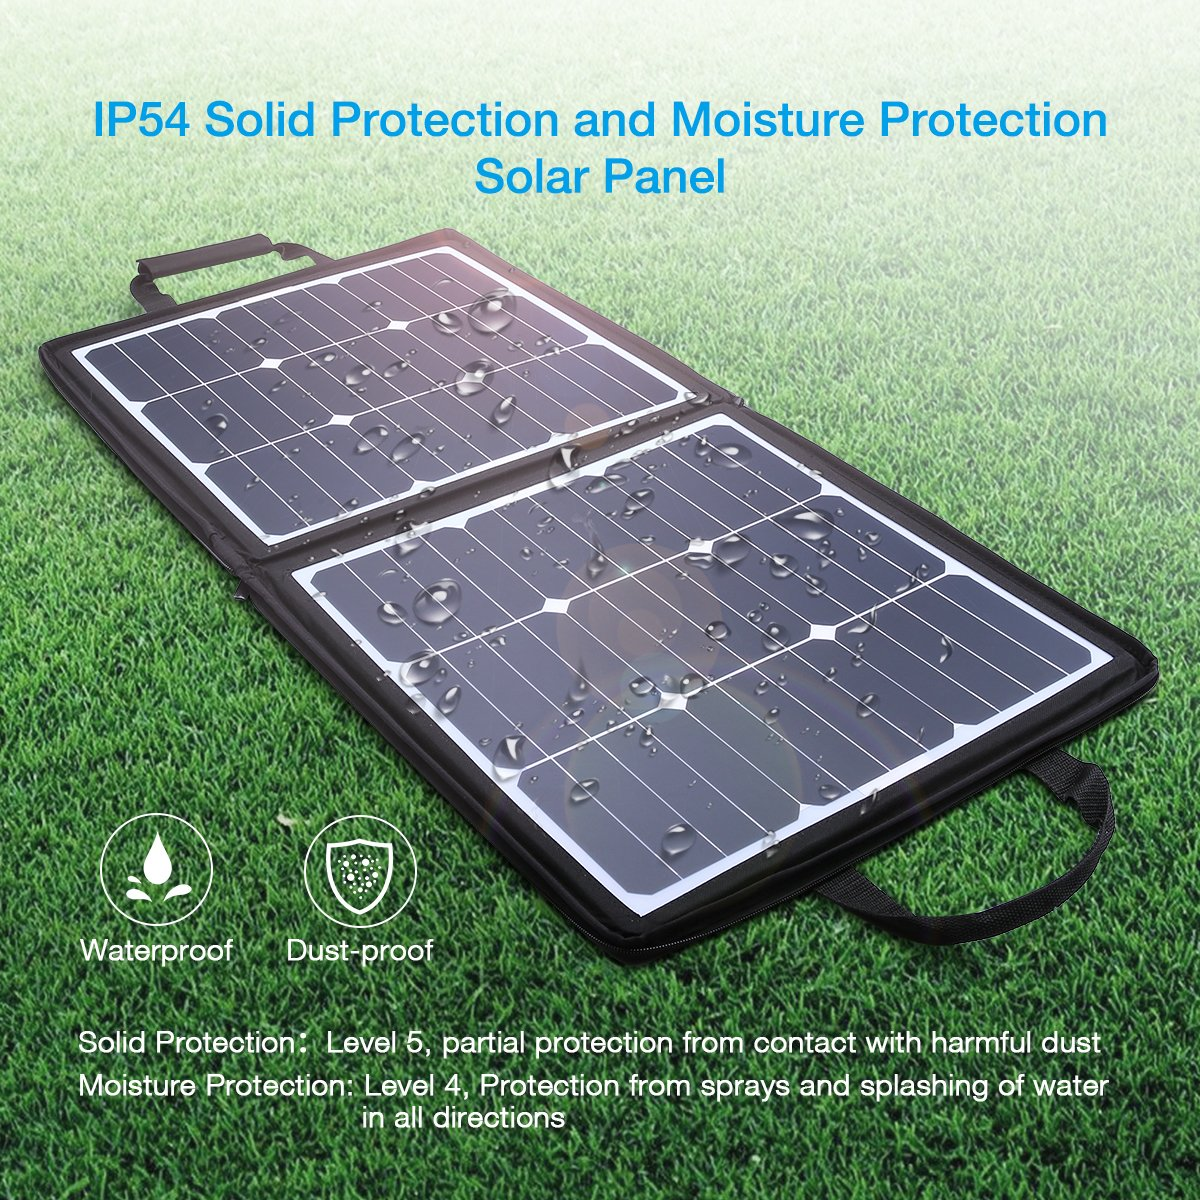 POWERADD [High Efficiency] 50W Solar Charger, 18V 12V SUNPOWER Solar Panel for Laptop, iPhone X / 8/8 Plus, iPad Pro, iPad mini, Macbook, iPad Samsung, ChargerCenter, Island Region and Country Tours by POWERADD (Image #2)